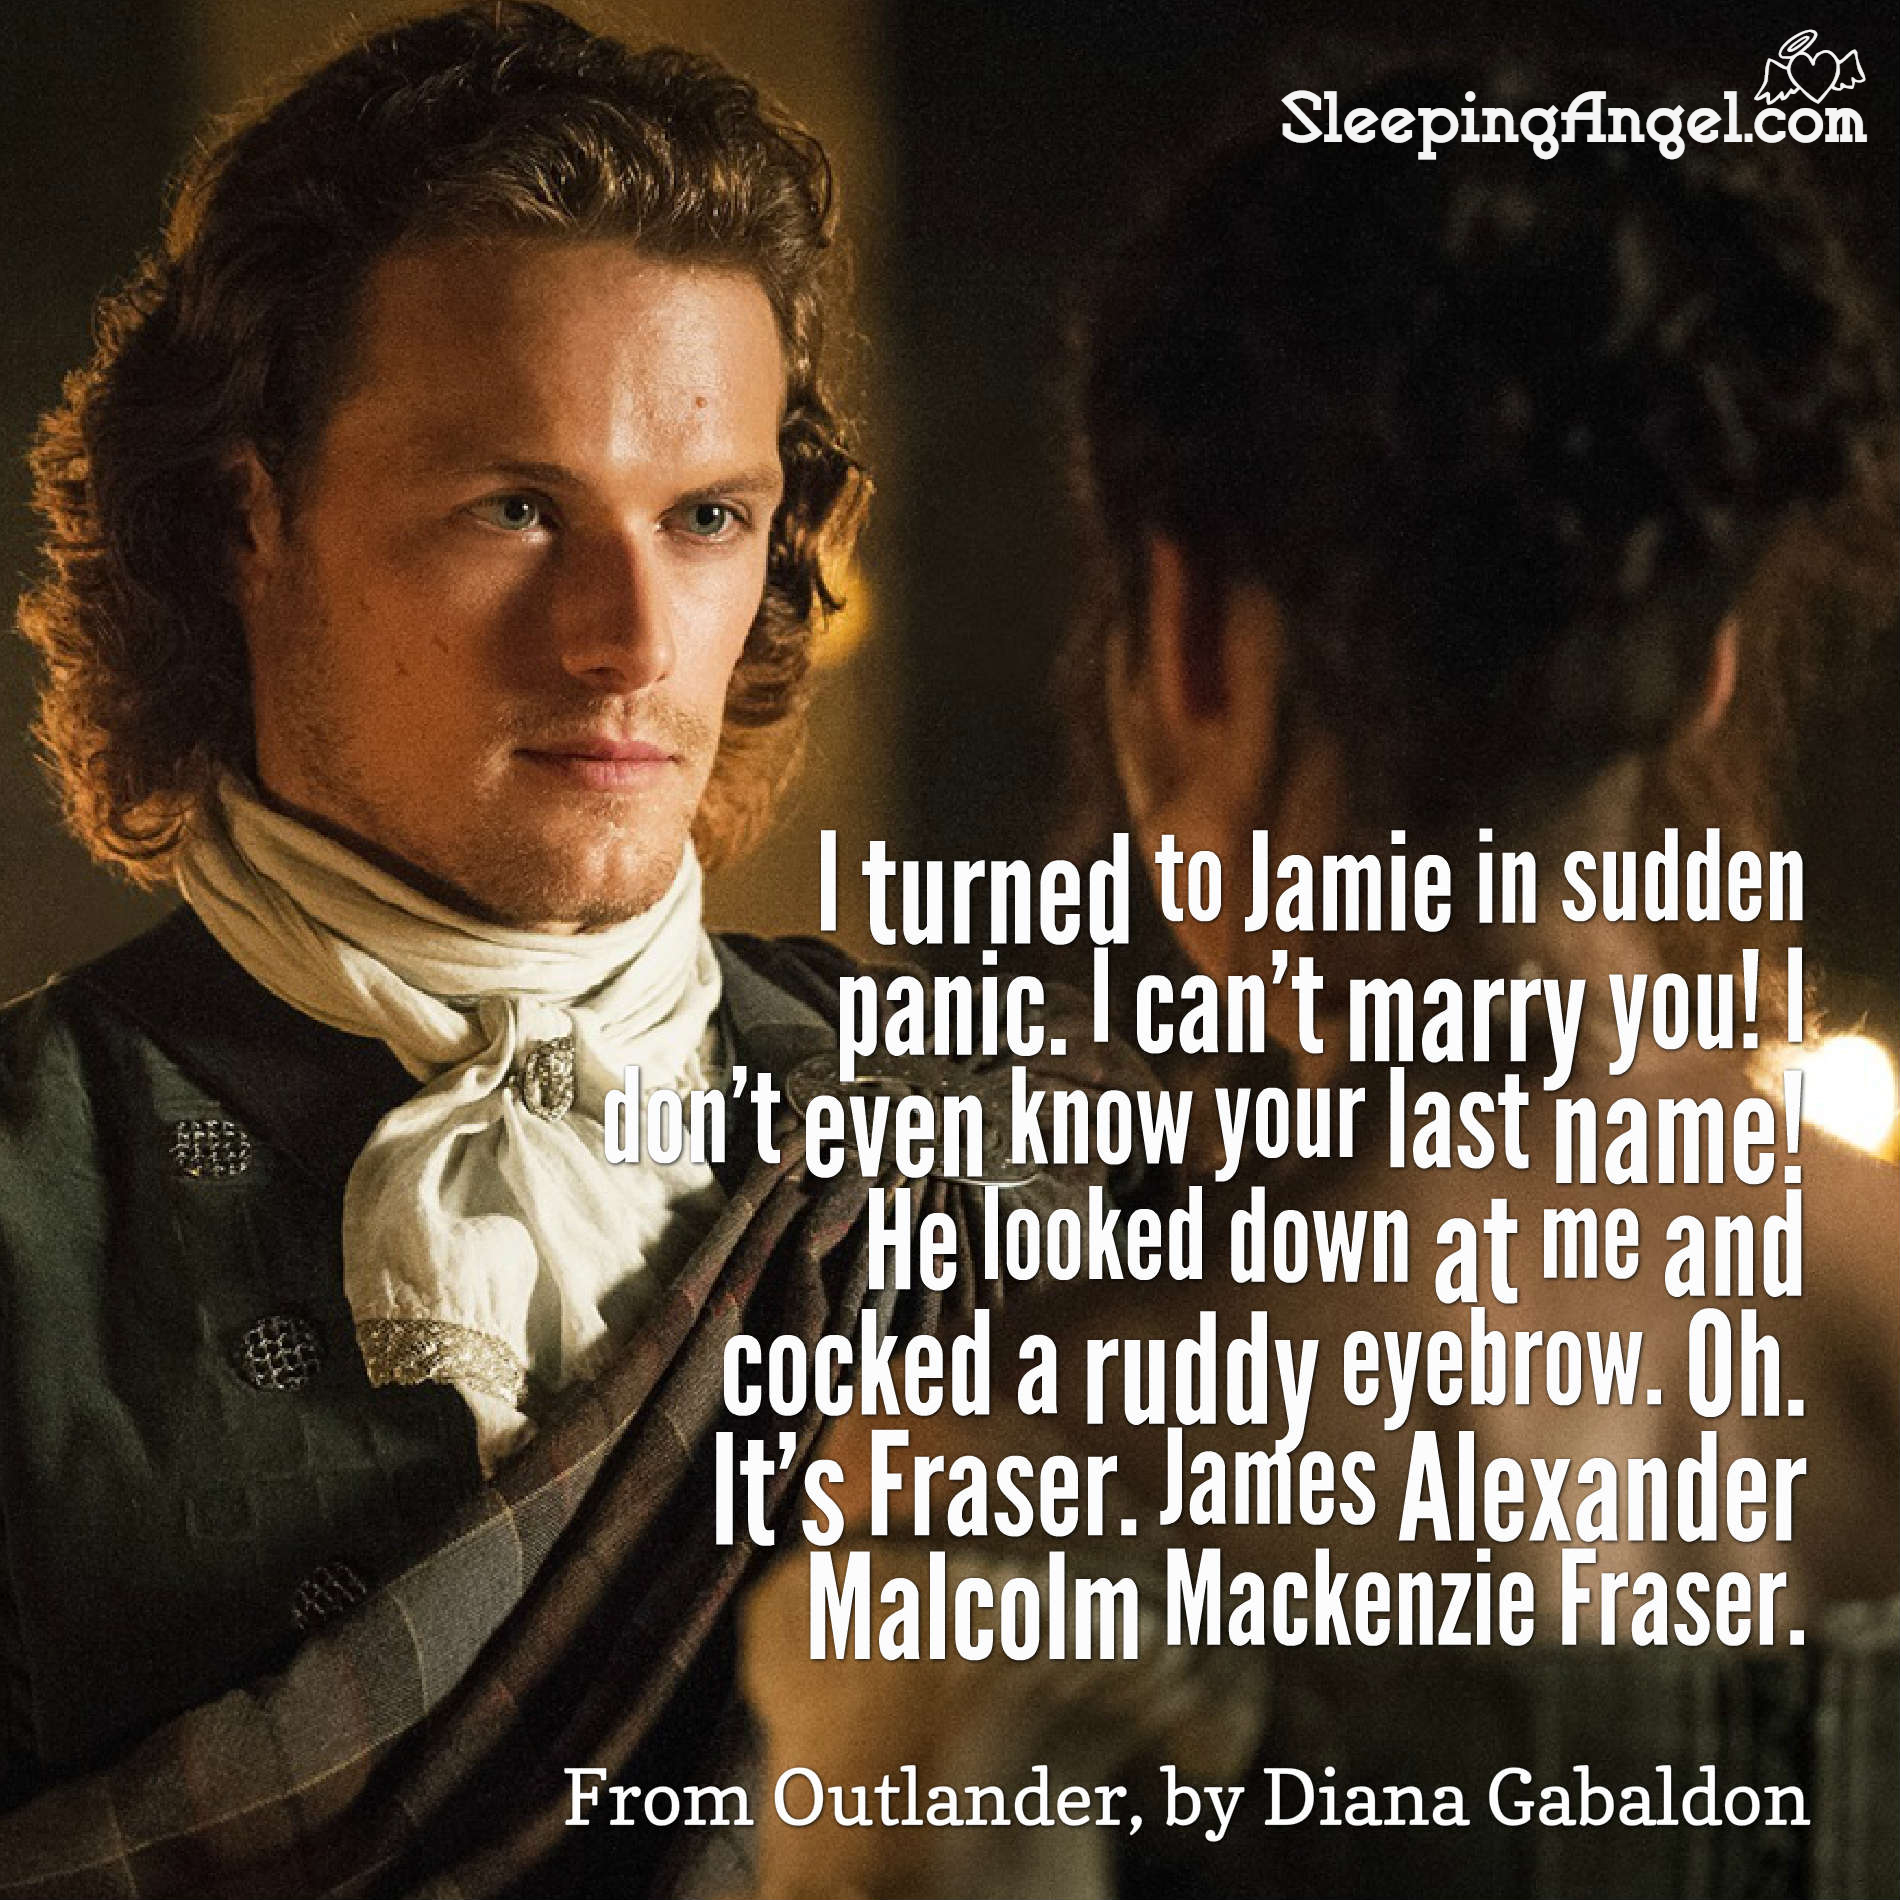 Diana Gabaldon Writer Dg Twitter Outlander Quote Sleeping Angel